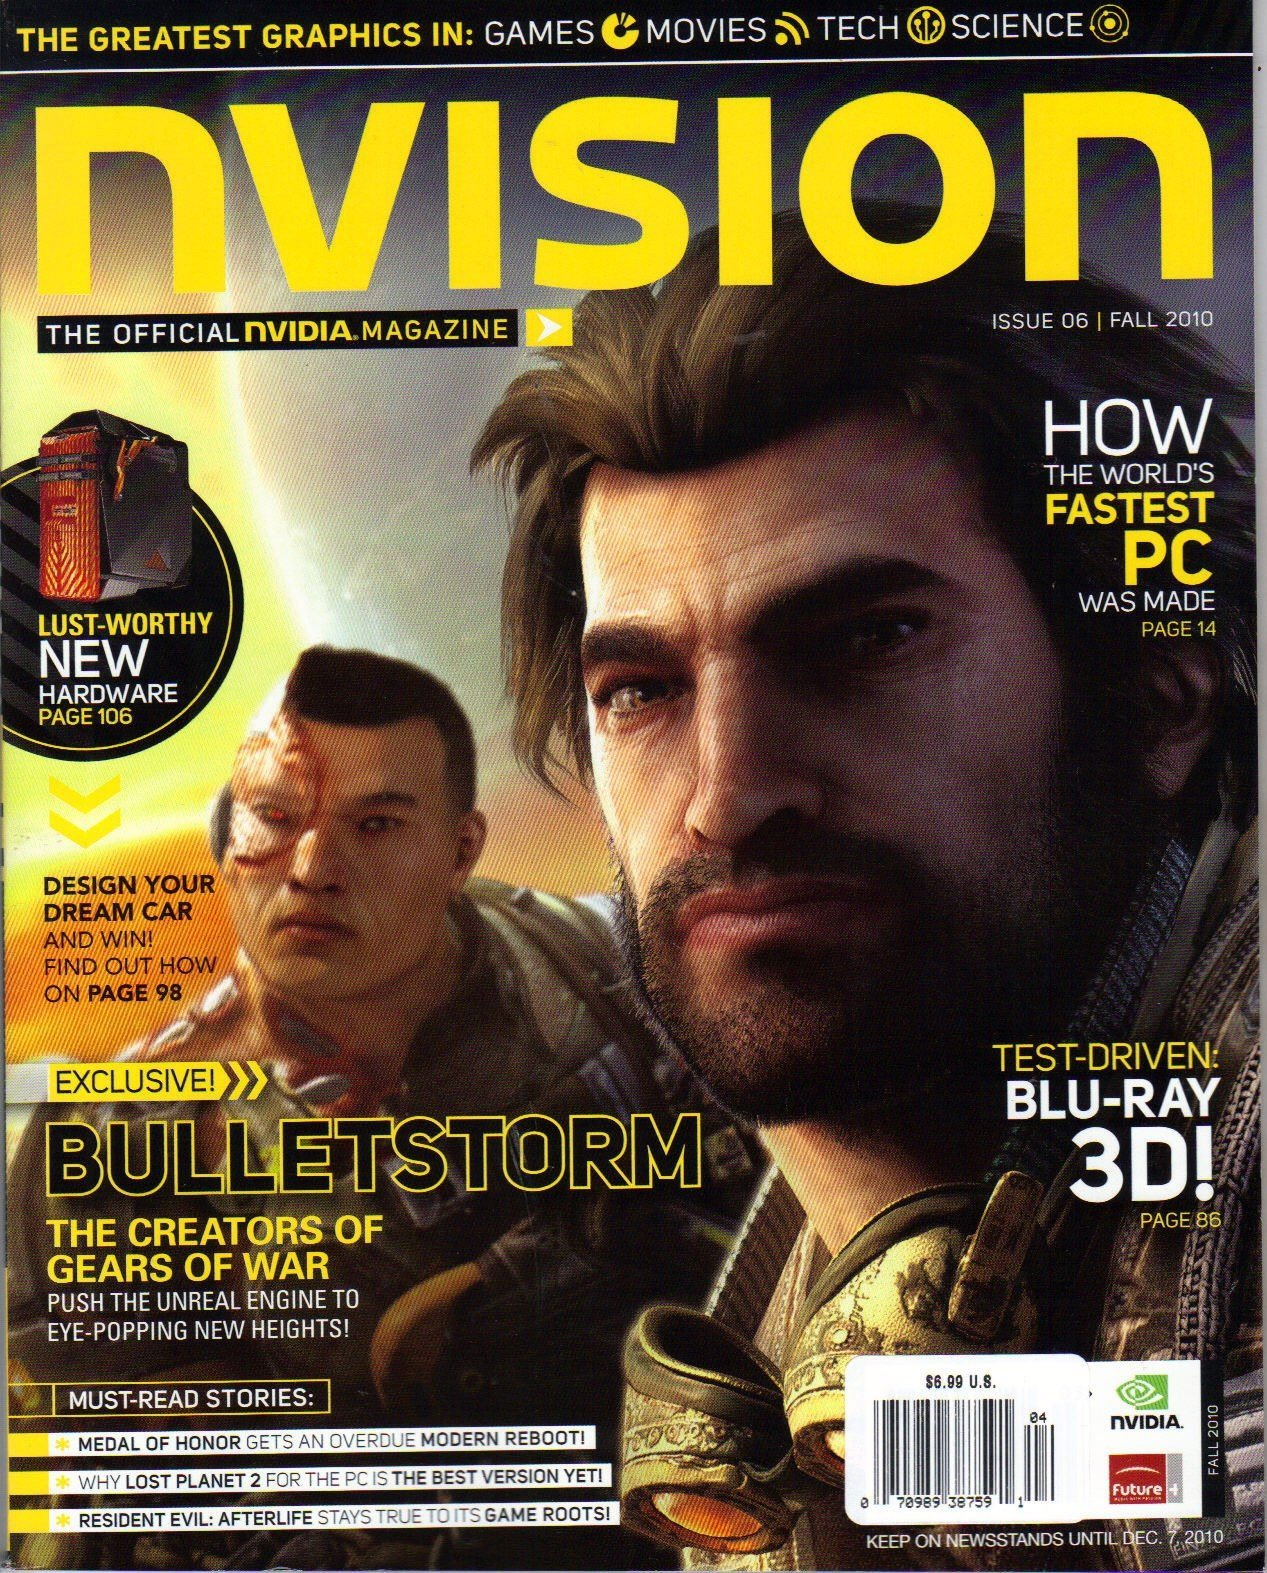 nVision Issue 06 (Fall 2010)